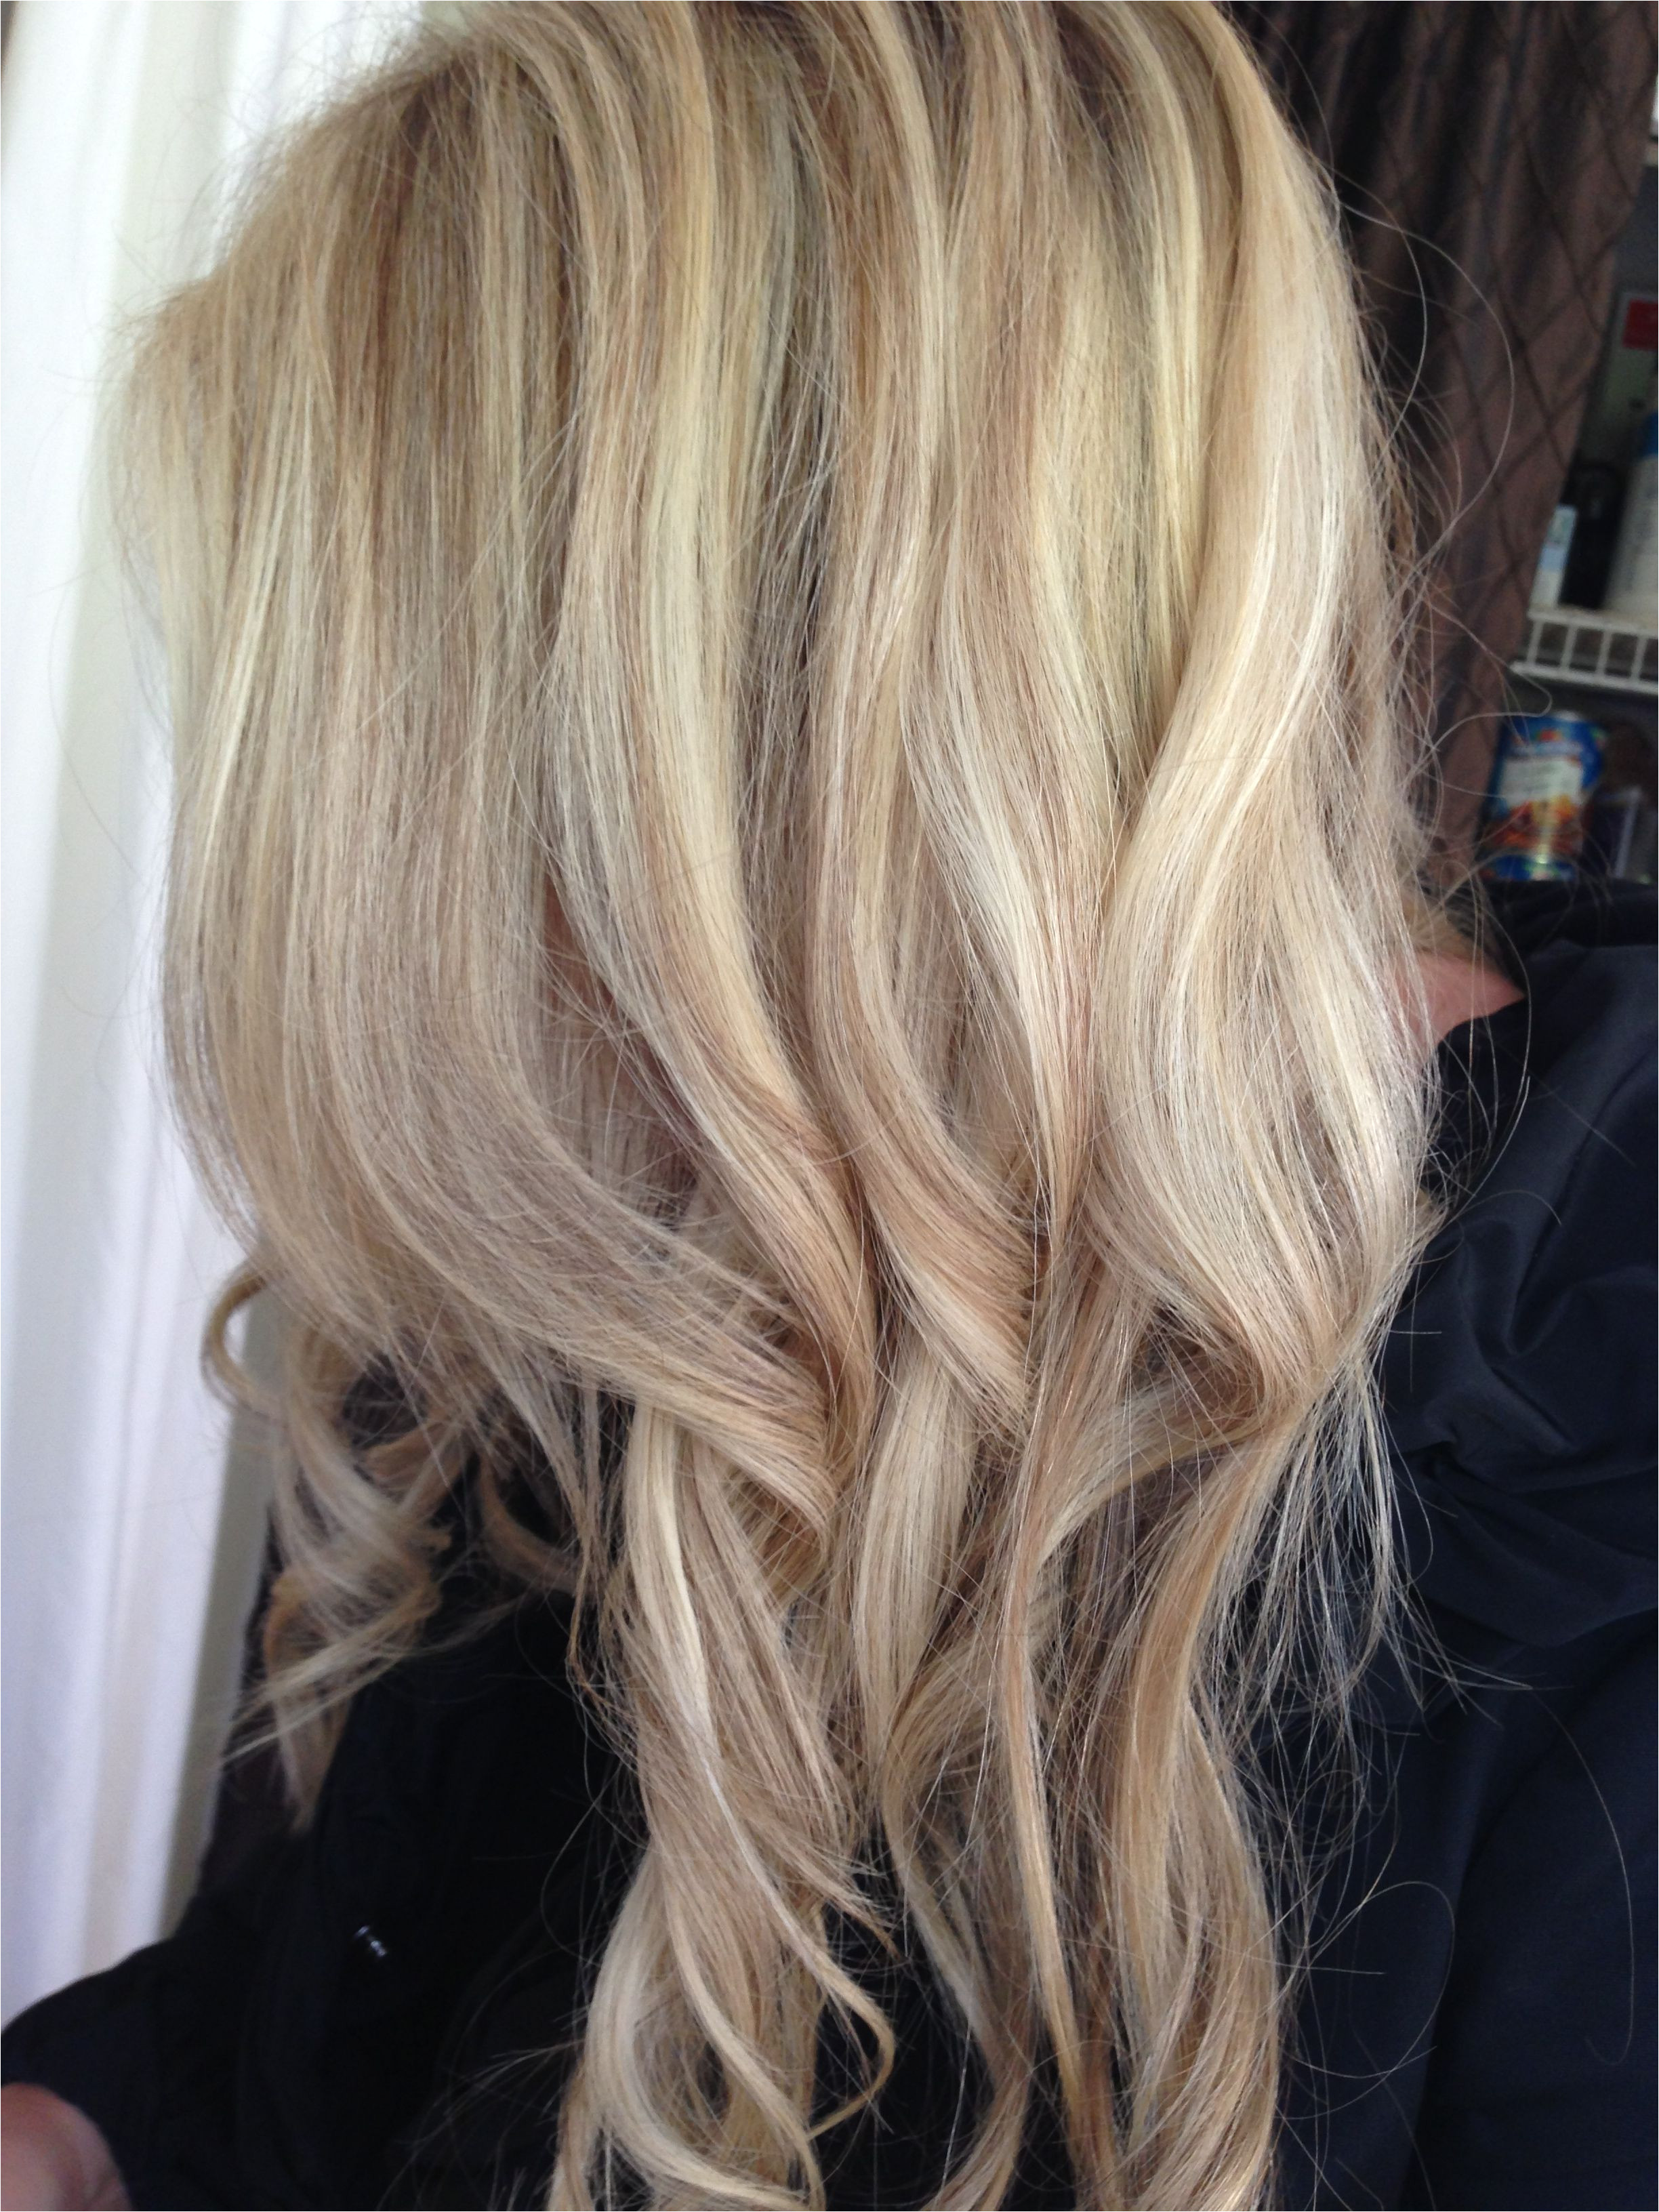 Blonde specialist Foil highlights by Jama Be e Hair Salon Issaquah Seattle Washington